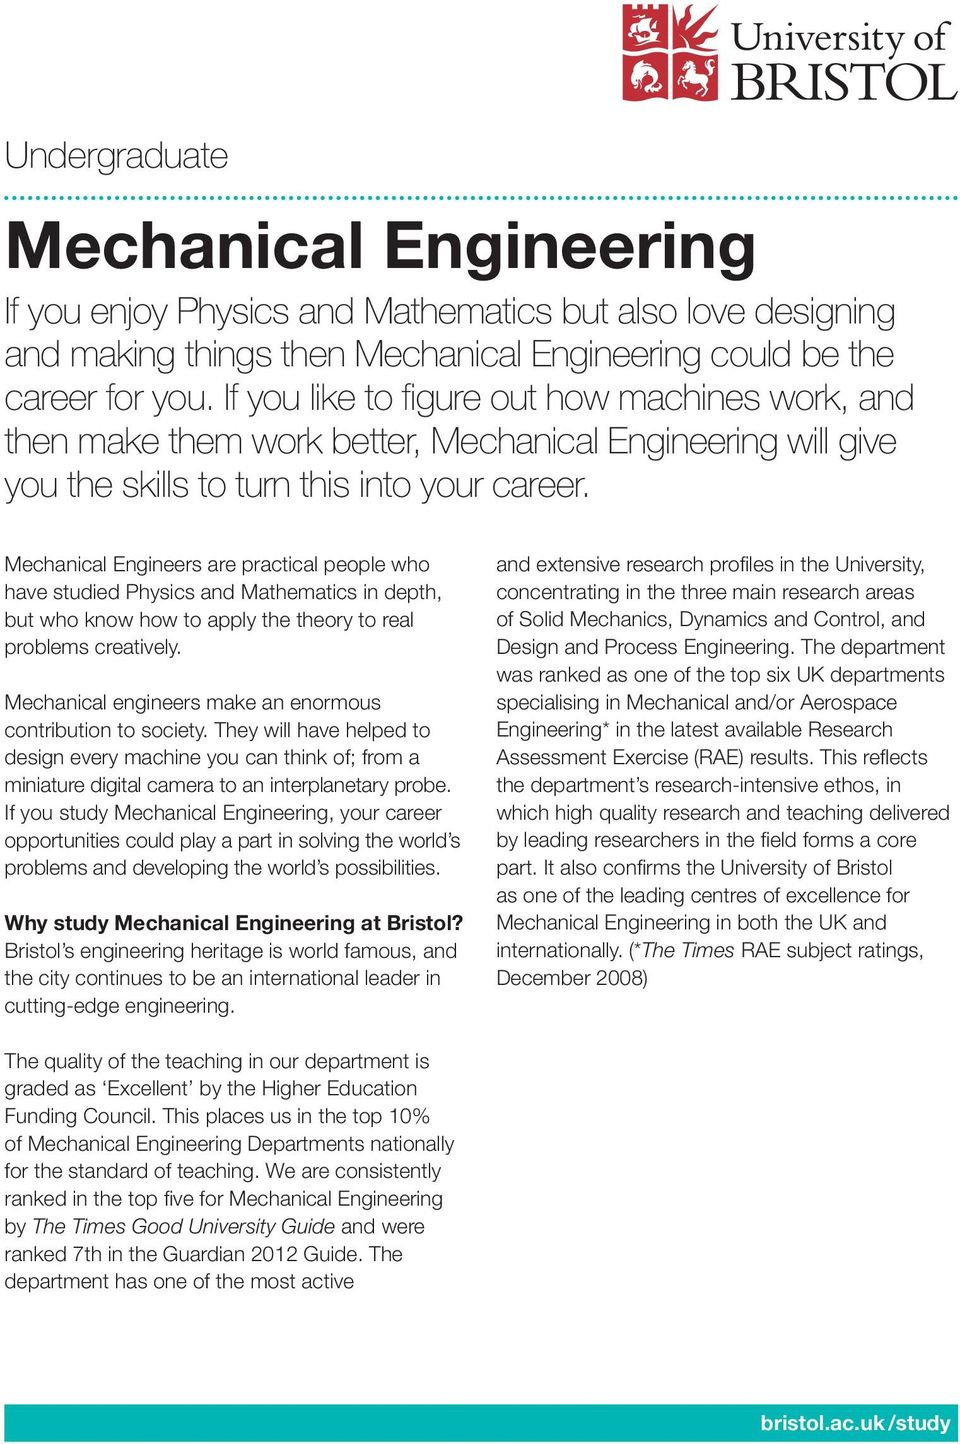 Mechanical Engineers are practical people who have studied Physics and Mathematics in depth, but who know how to apply the theory to real problems creatively.